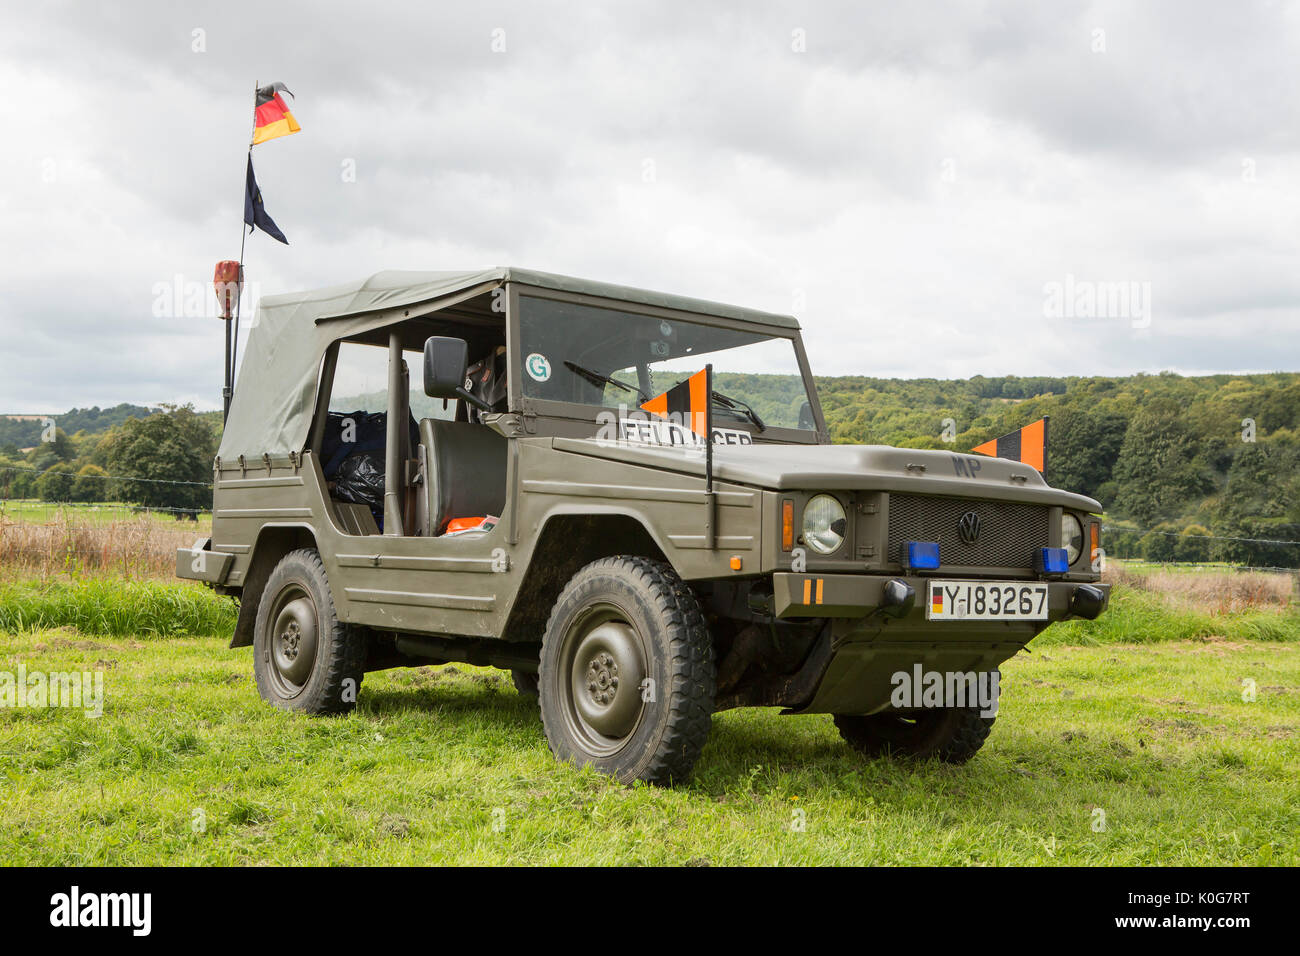 Vintage German military volkswagen of the feldjager or military police. Shot in a rural location. Stock Photo